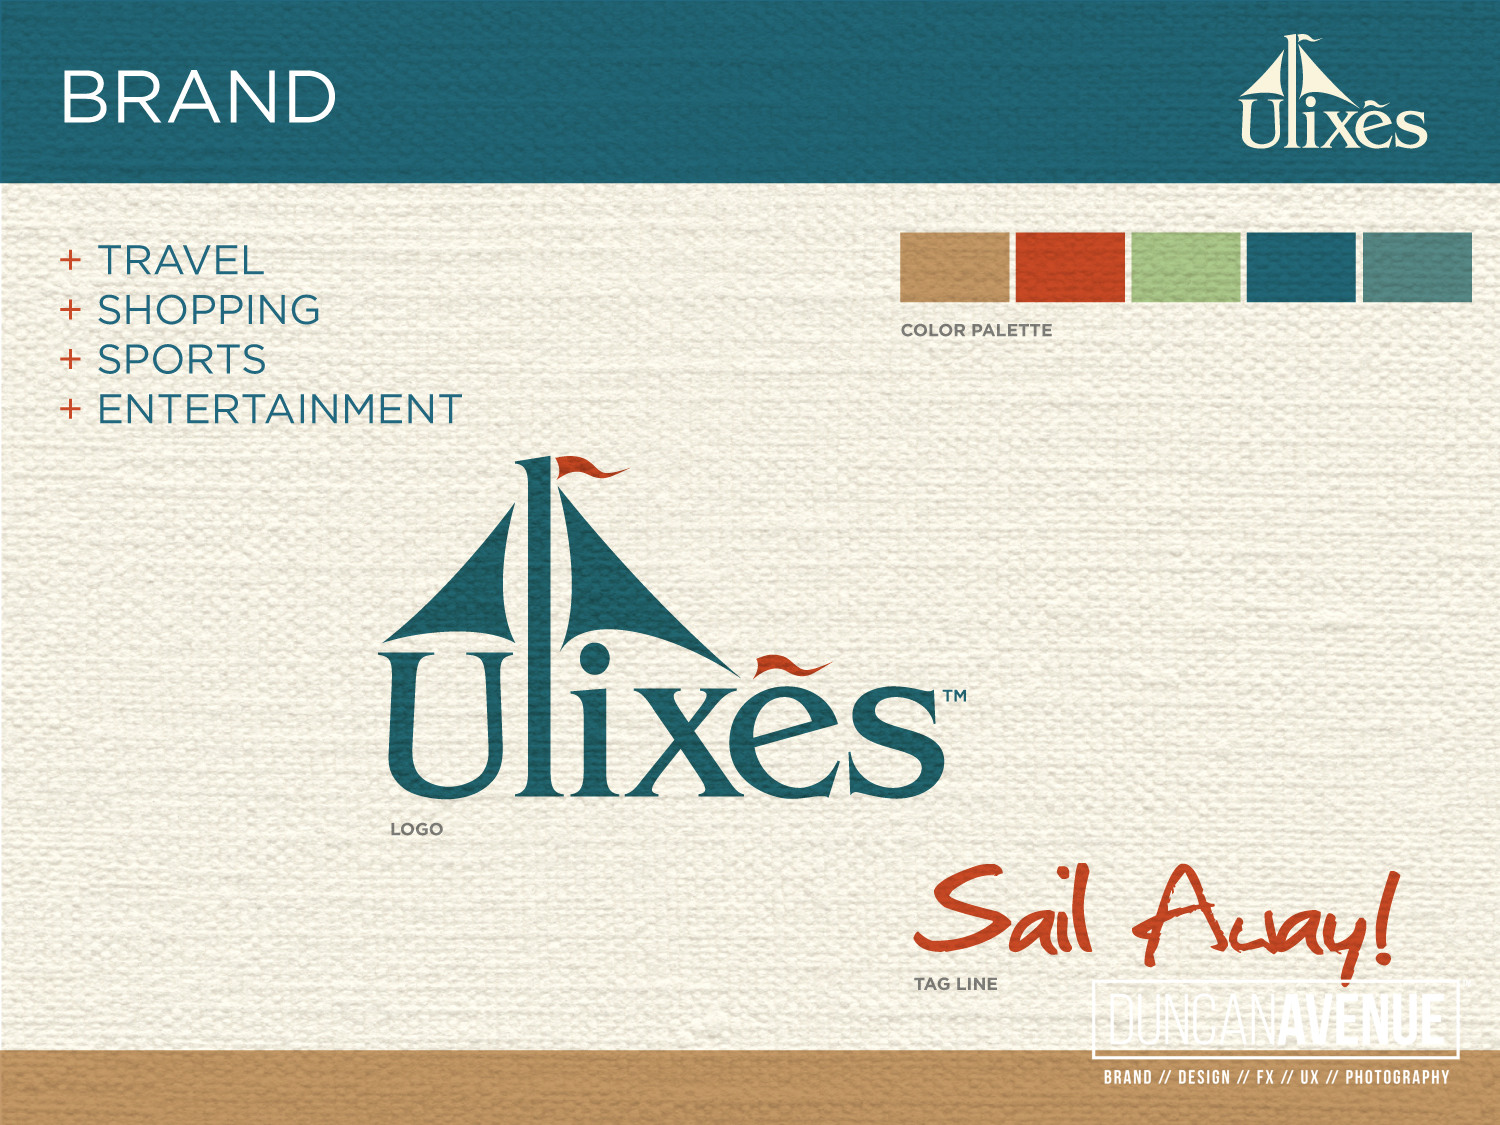 Ulixes Beach Theme Park - Experience Design Concept in Coney Island/Brooklyn, NY - Maxwell Alexander